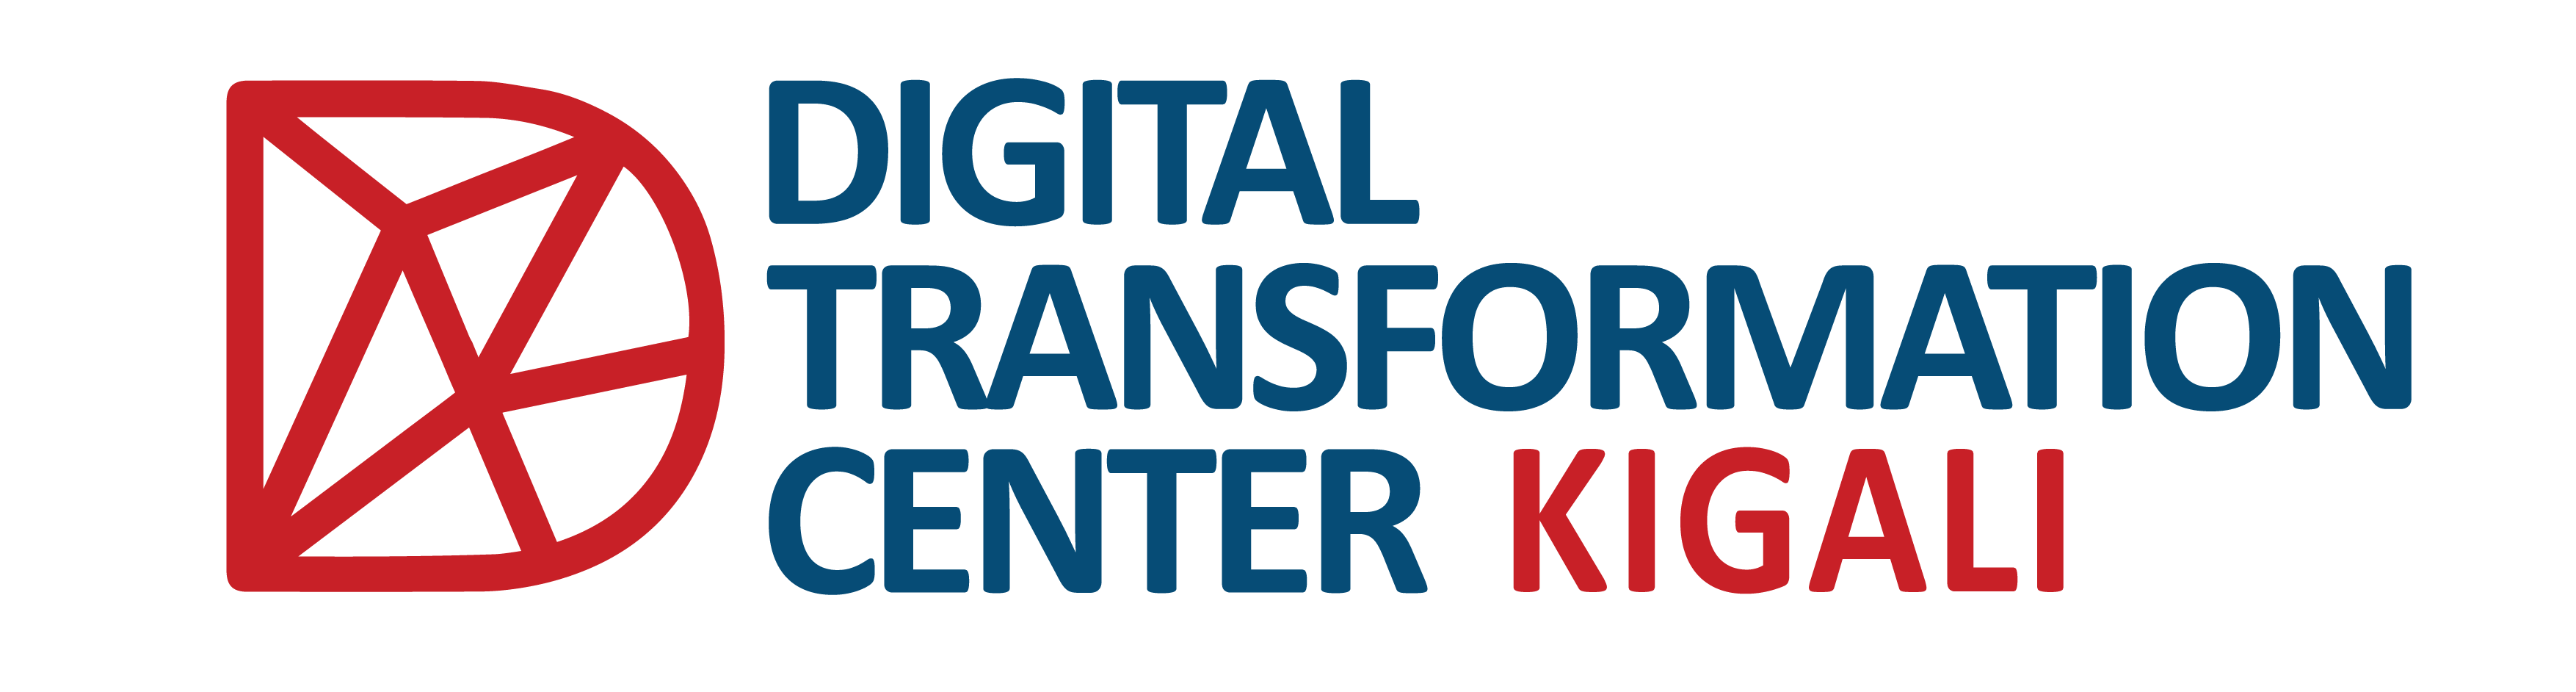 Digital Transformation Center Kigali